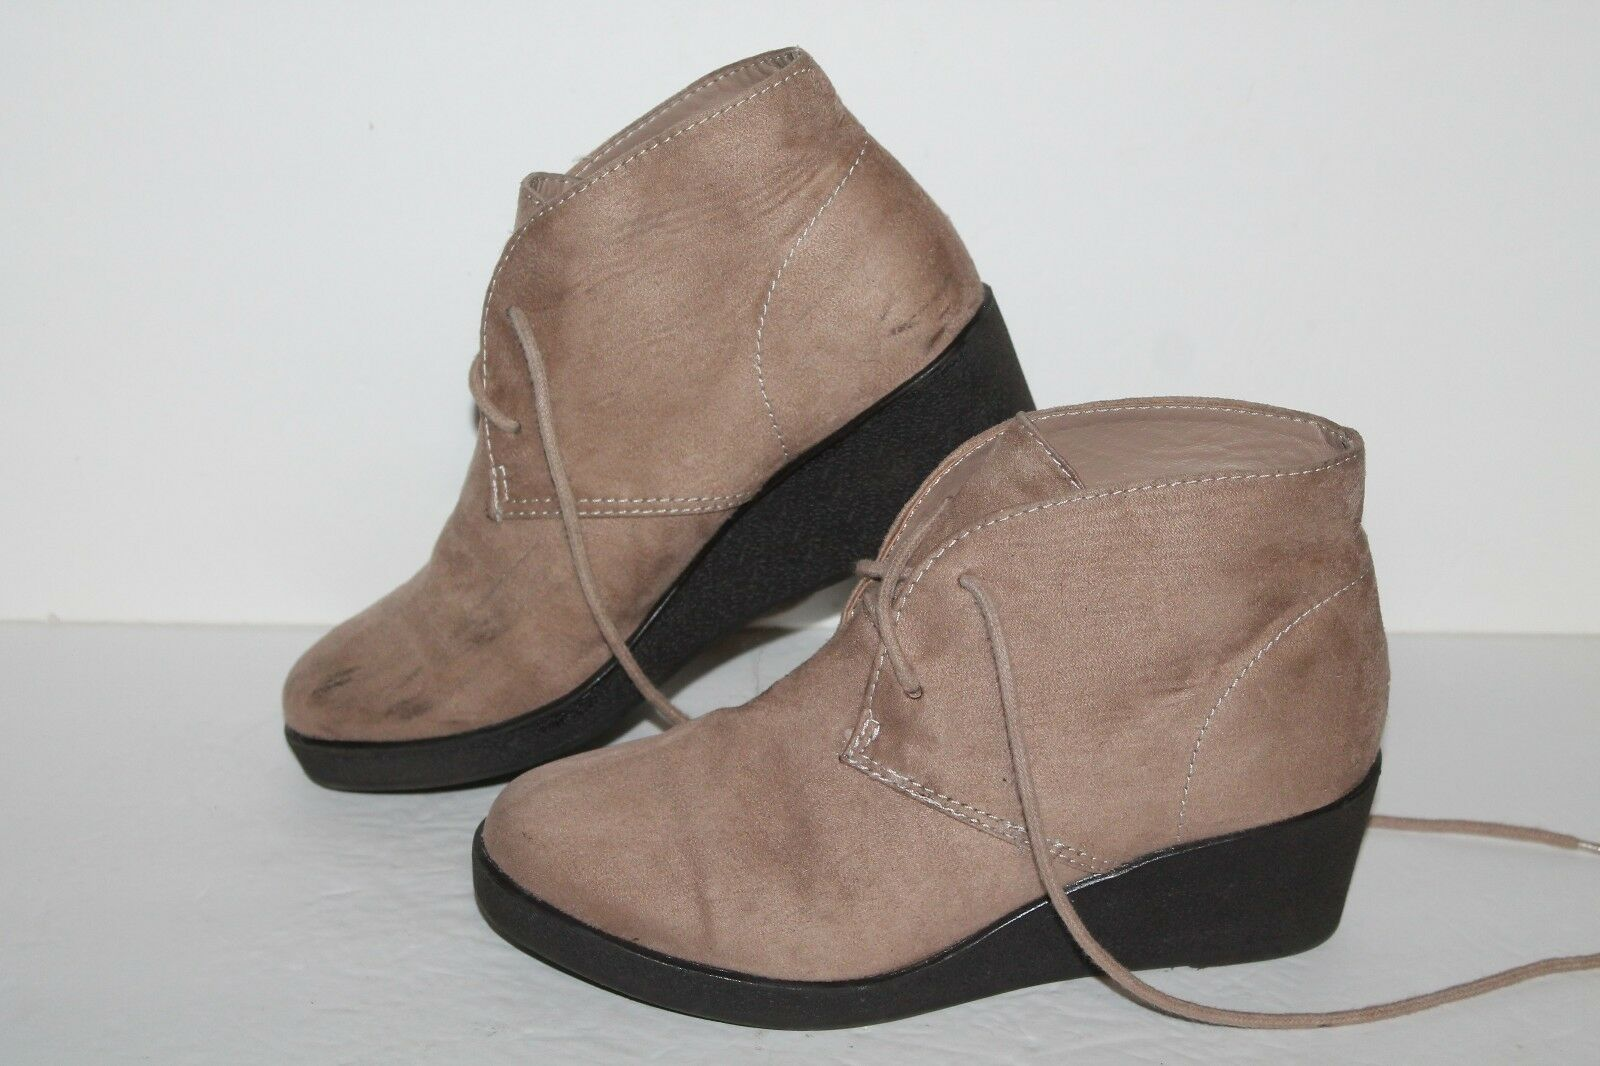 White Mt. Laveda Ankle Boots, Tan, Fabric, Women's US Size 5.5